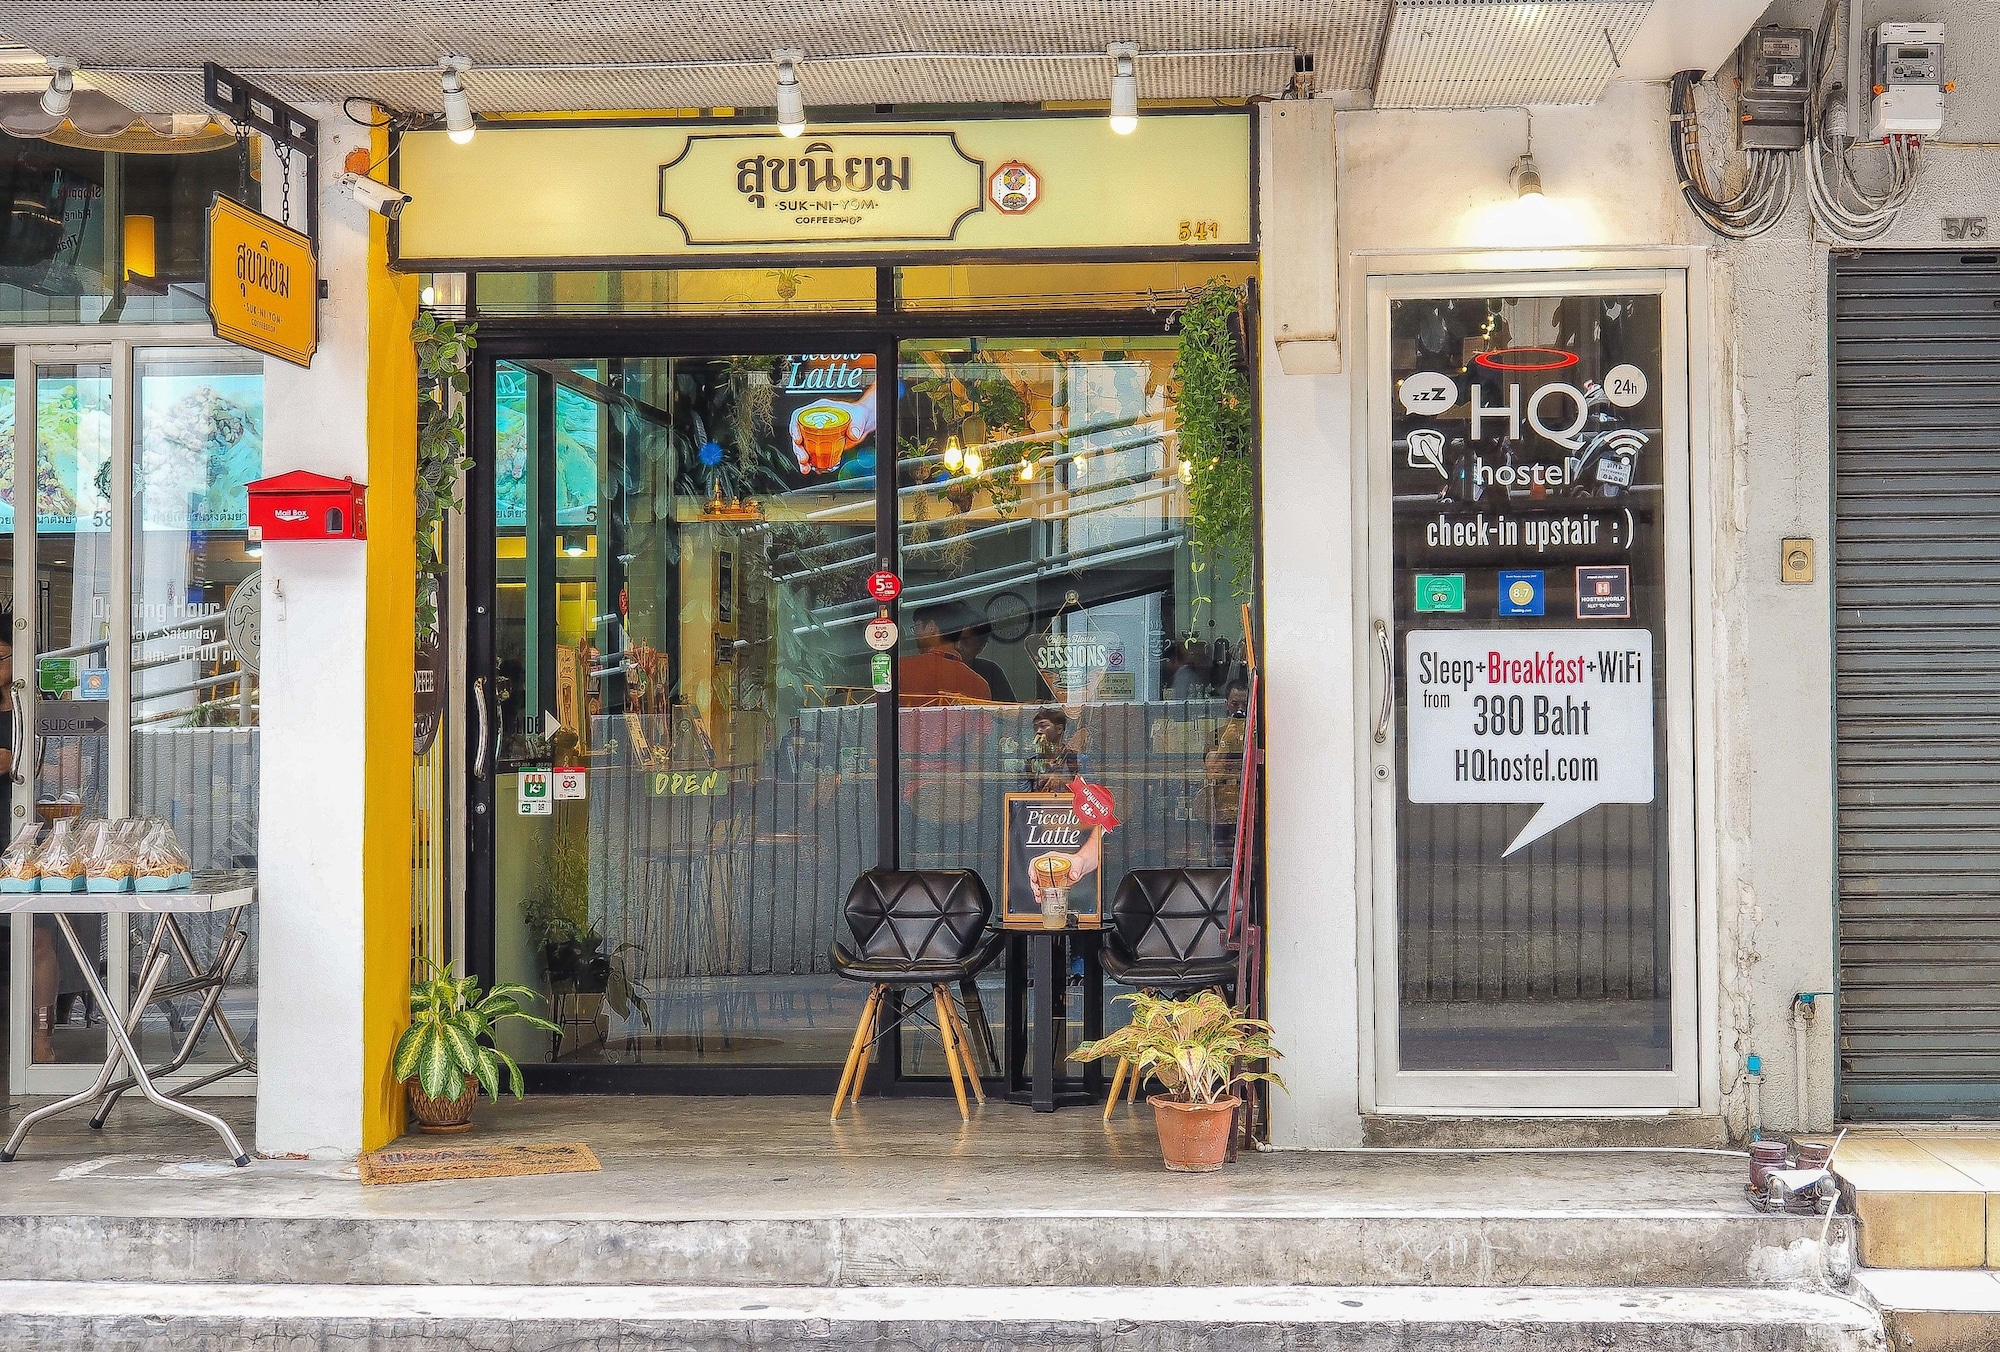 HQ hostel Silom, Bang Rak